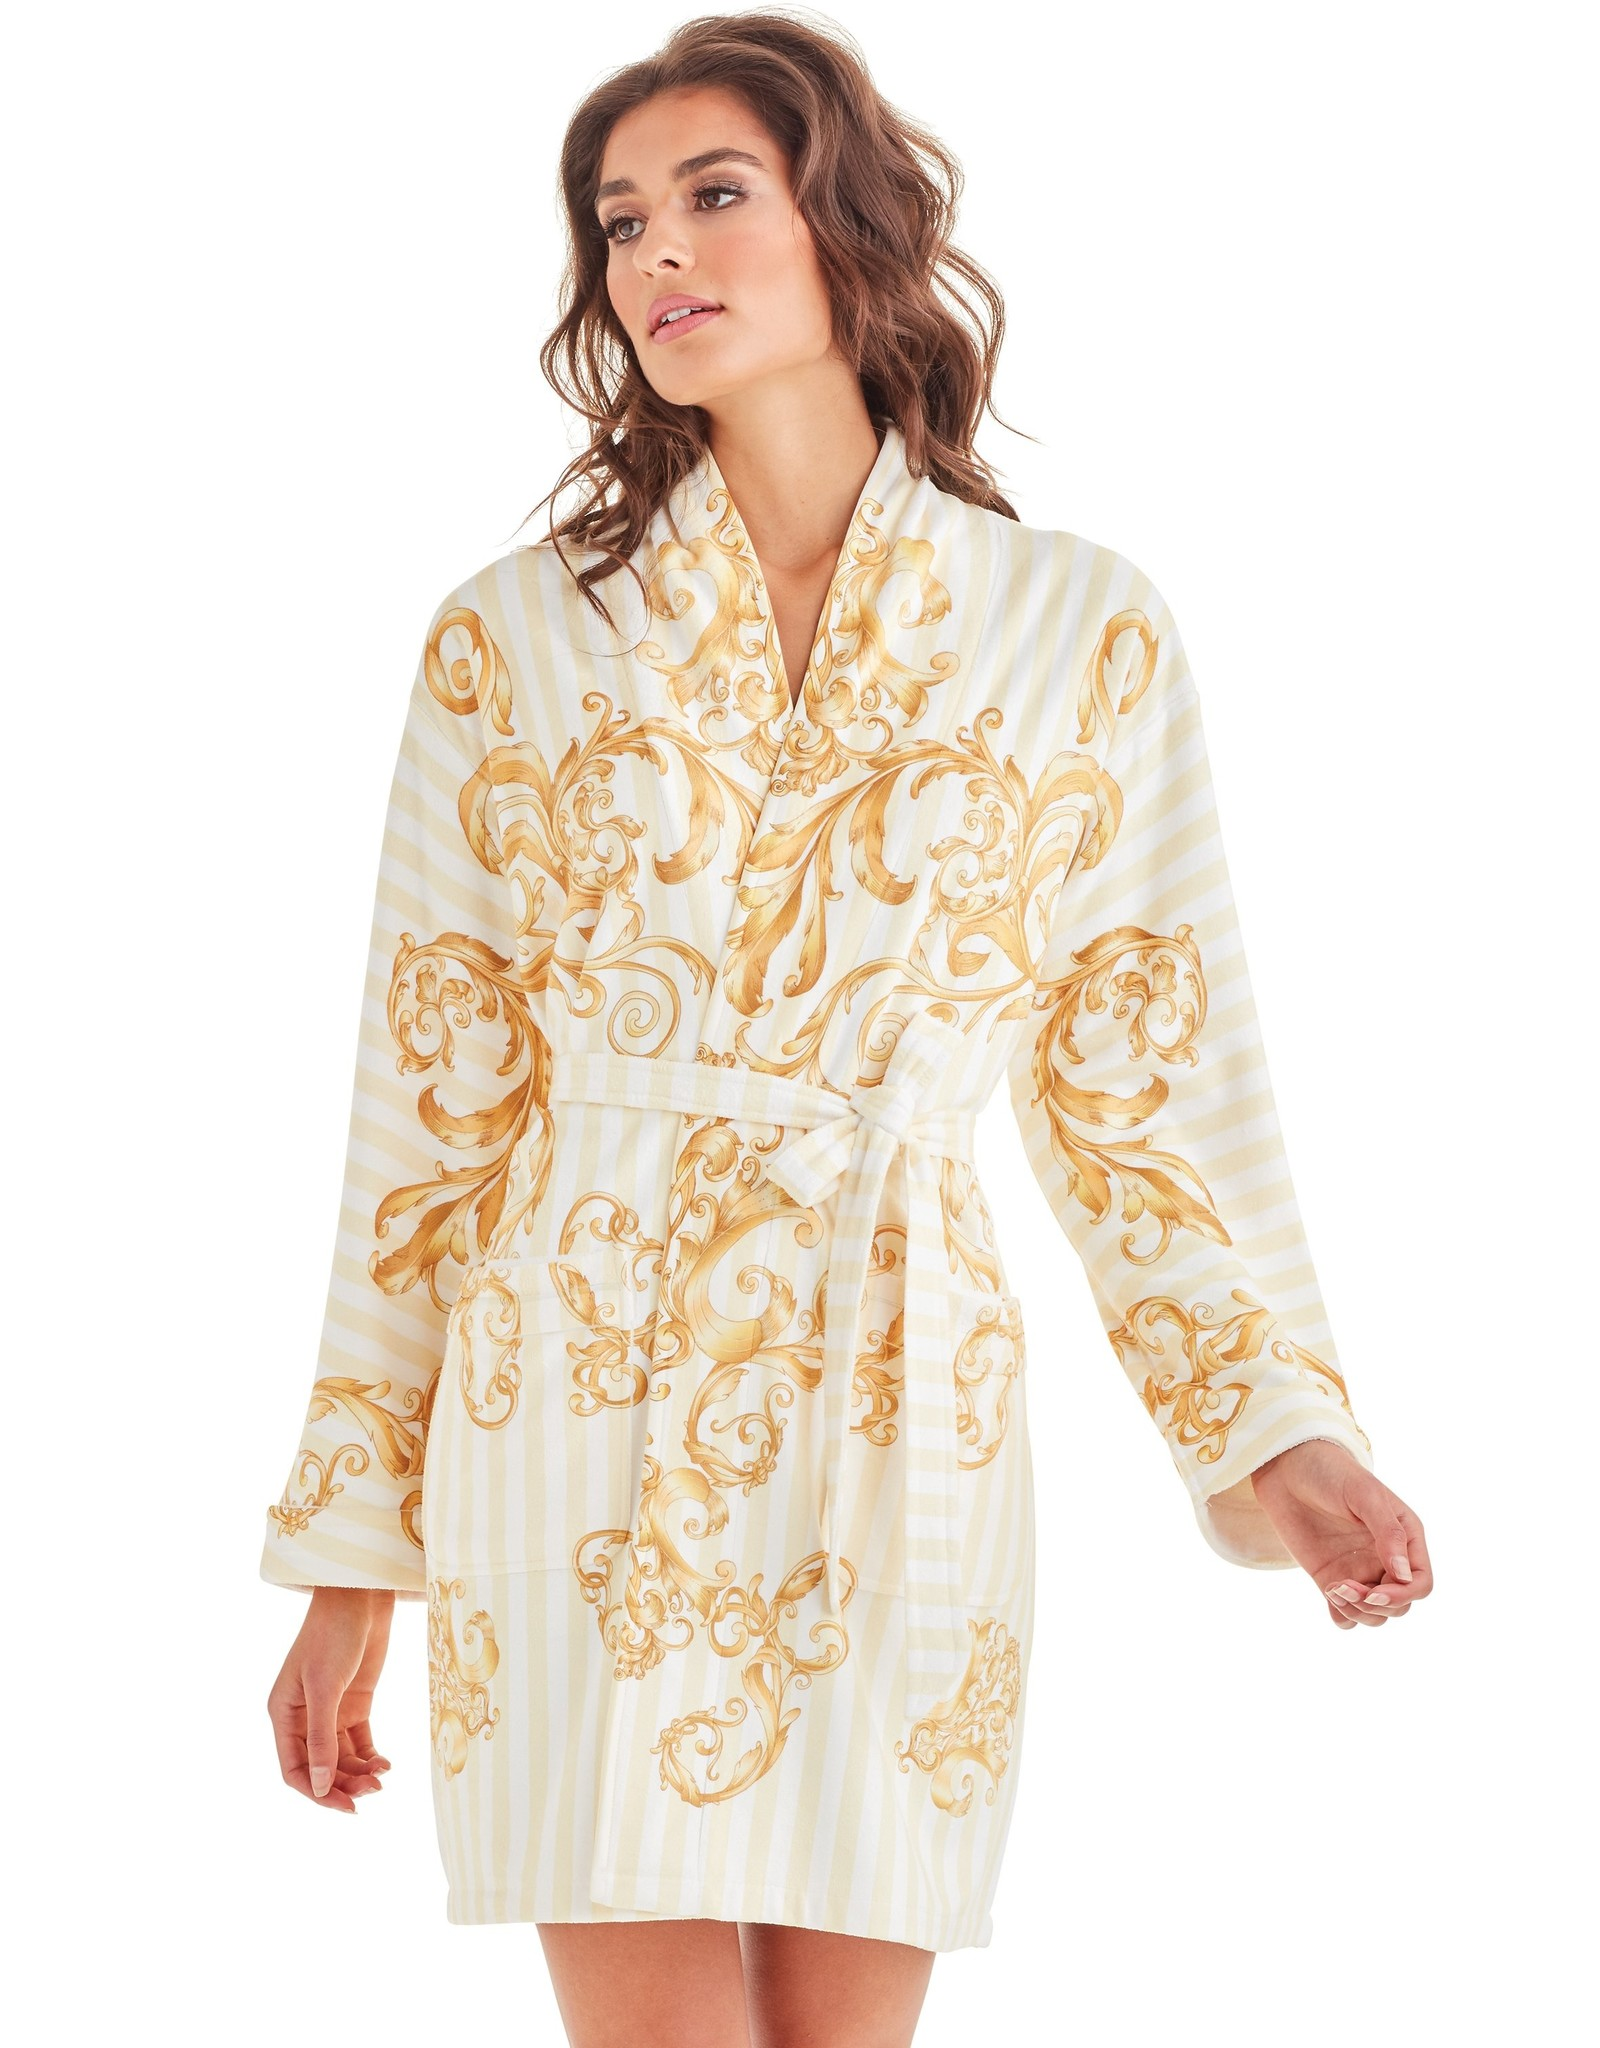 - 50% Bathrobe - Baroque Stripes